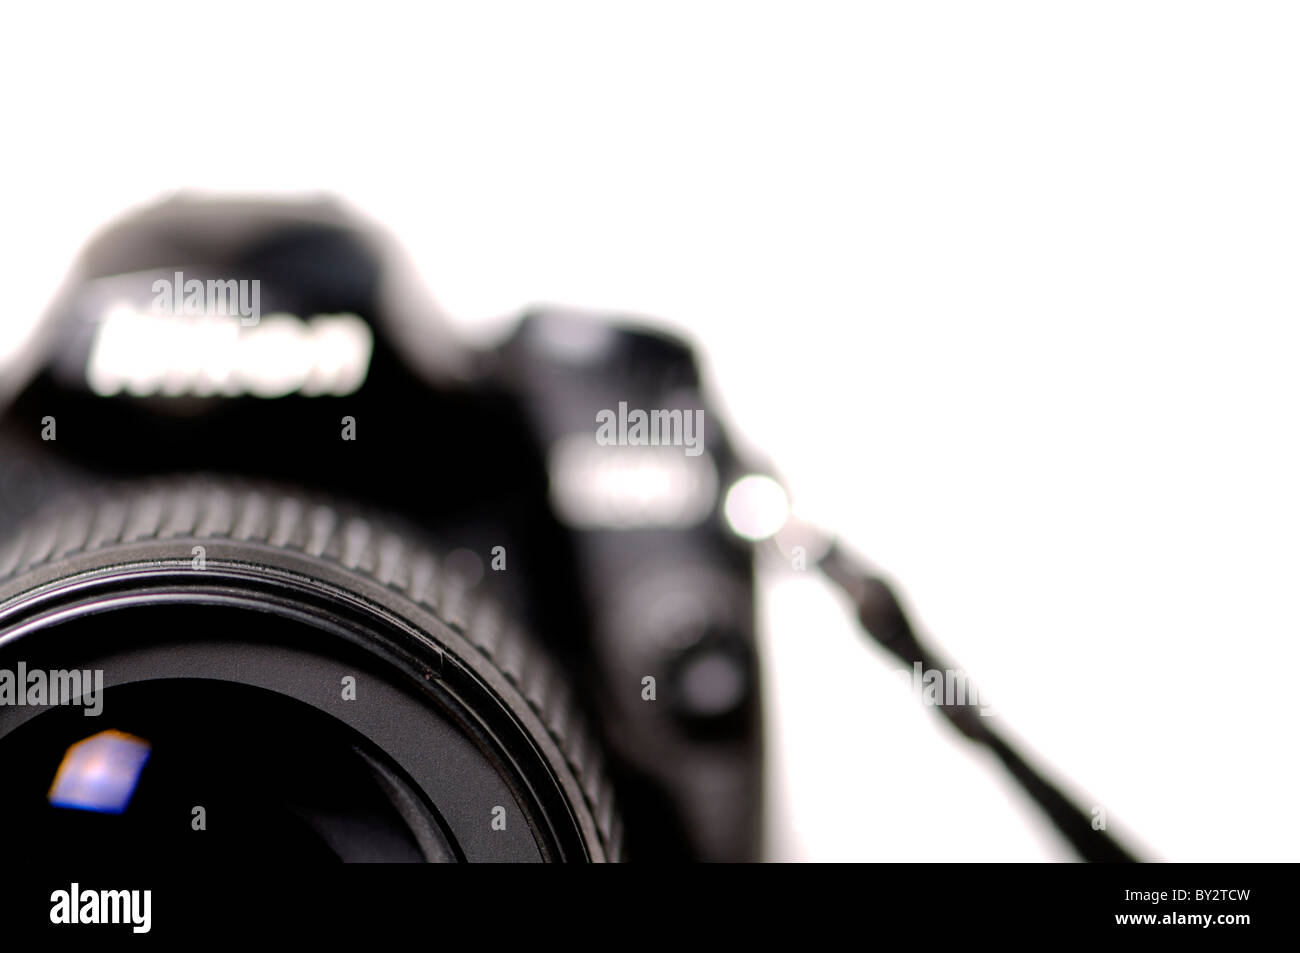 Camera (Nikon D200) out of focus, except for front of lens - Stock Image